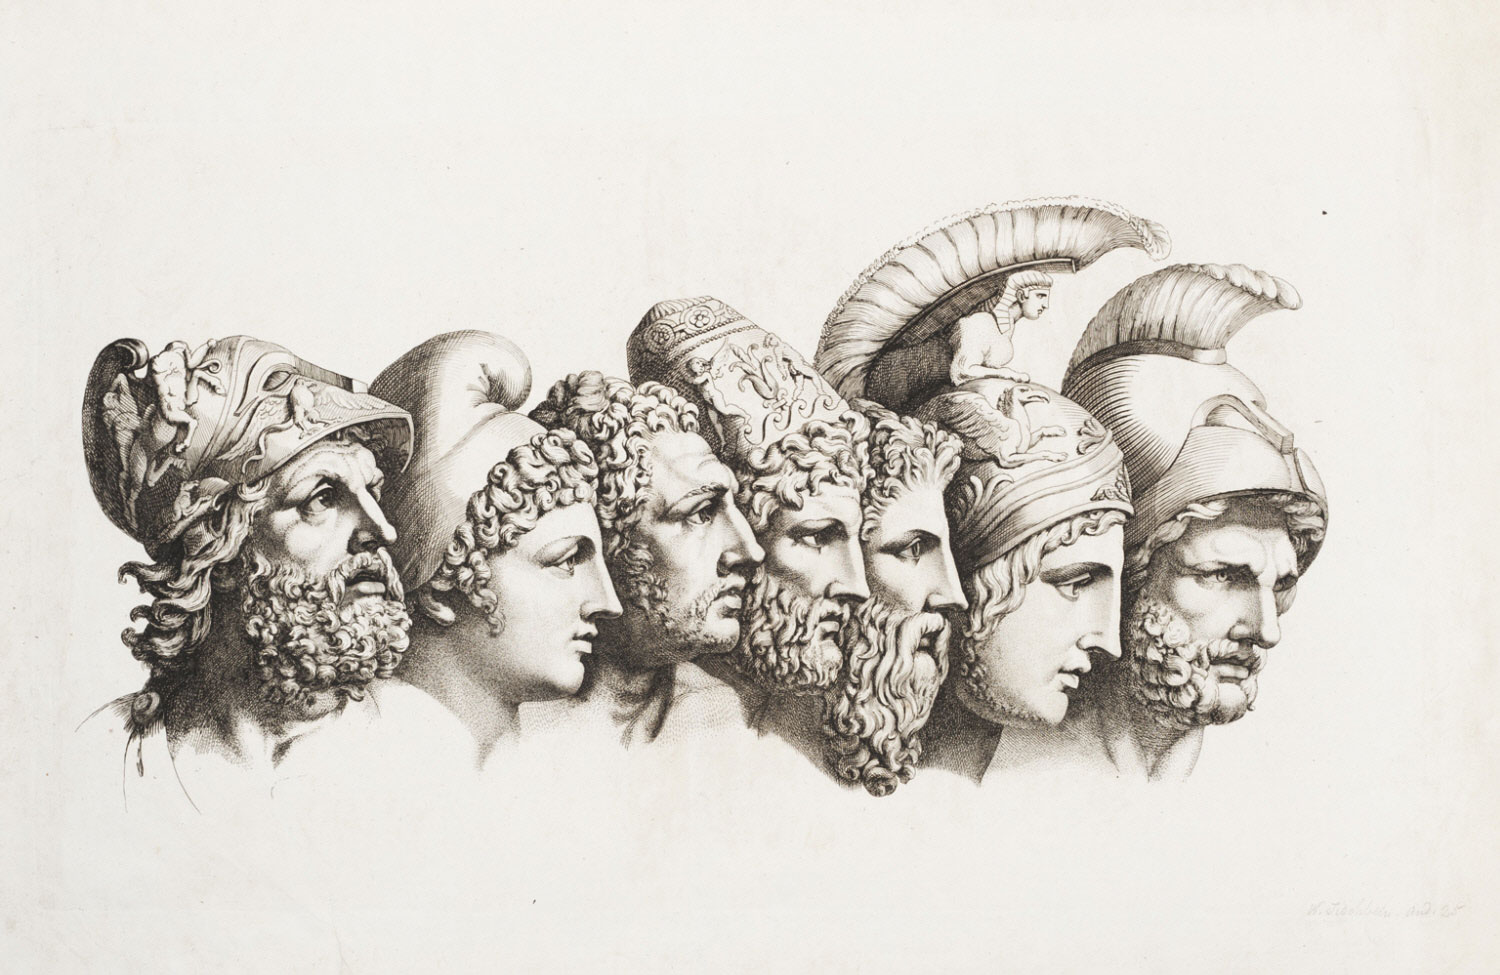 Busts of the Seven Major Heroes of the Iliad